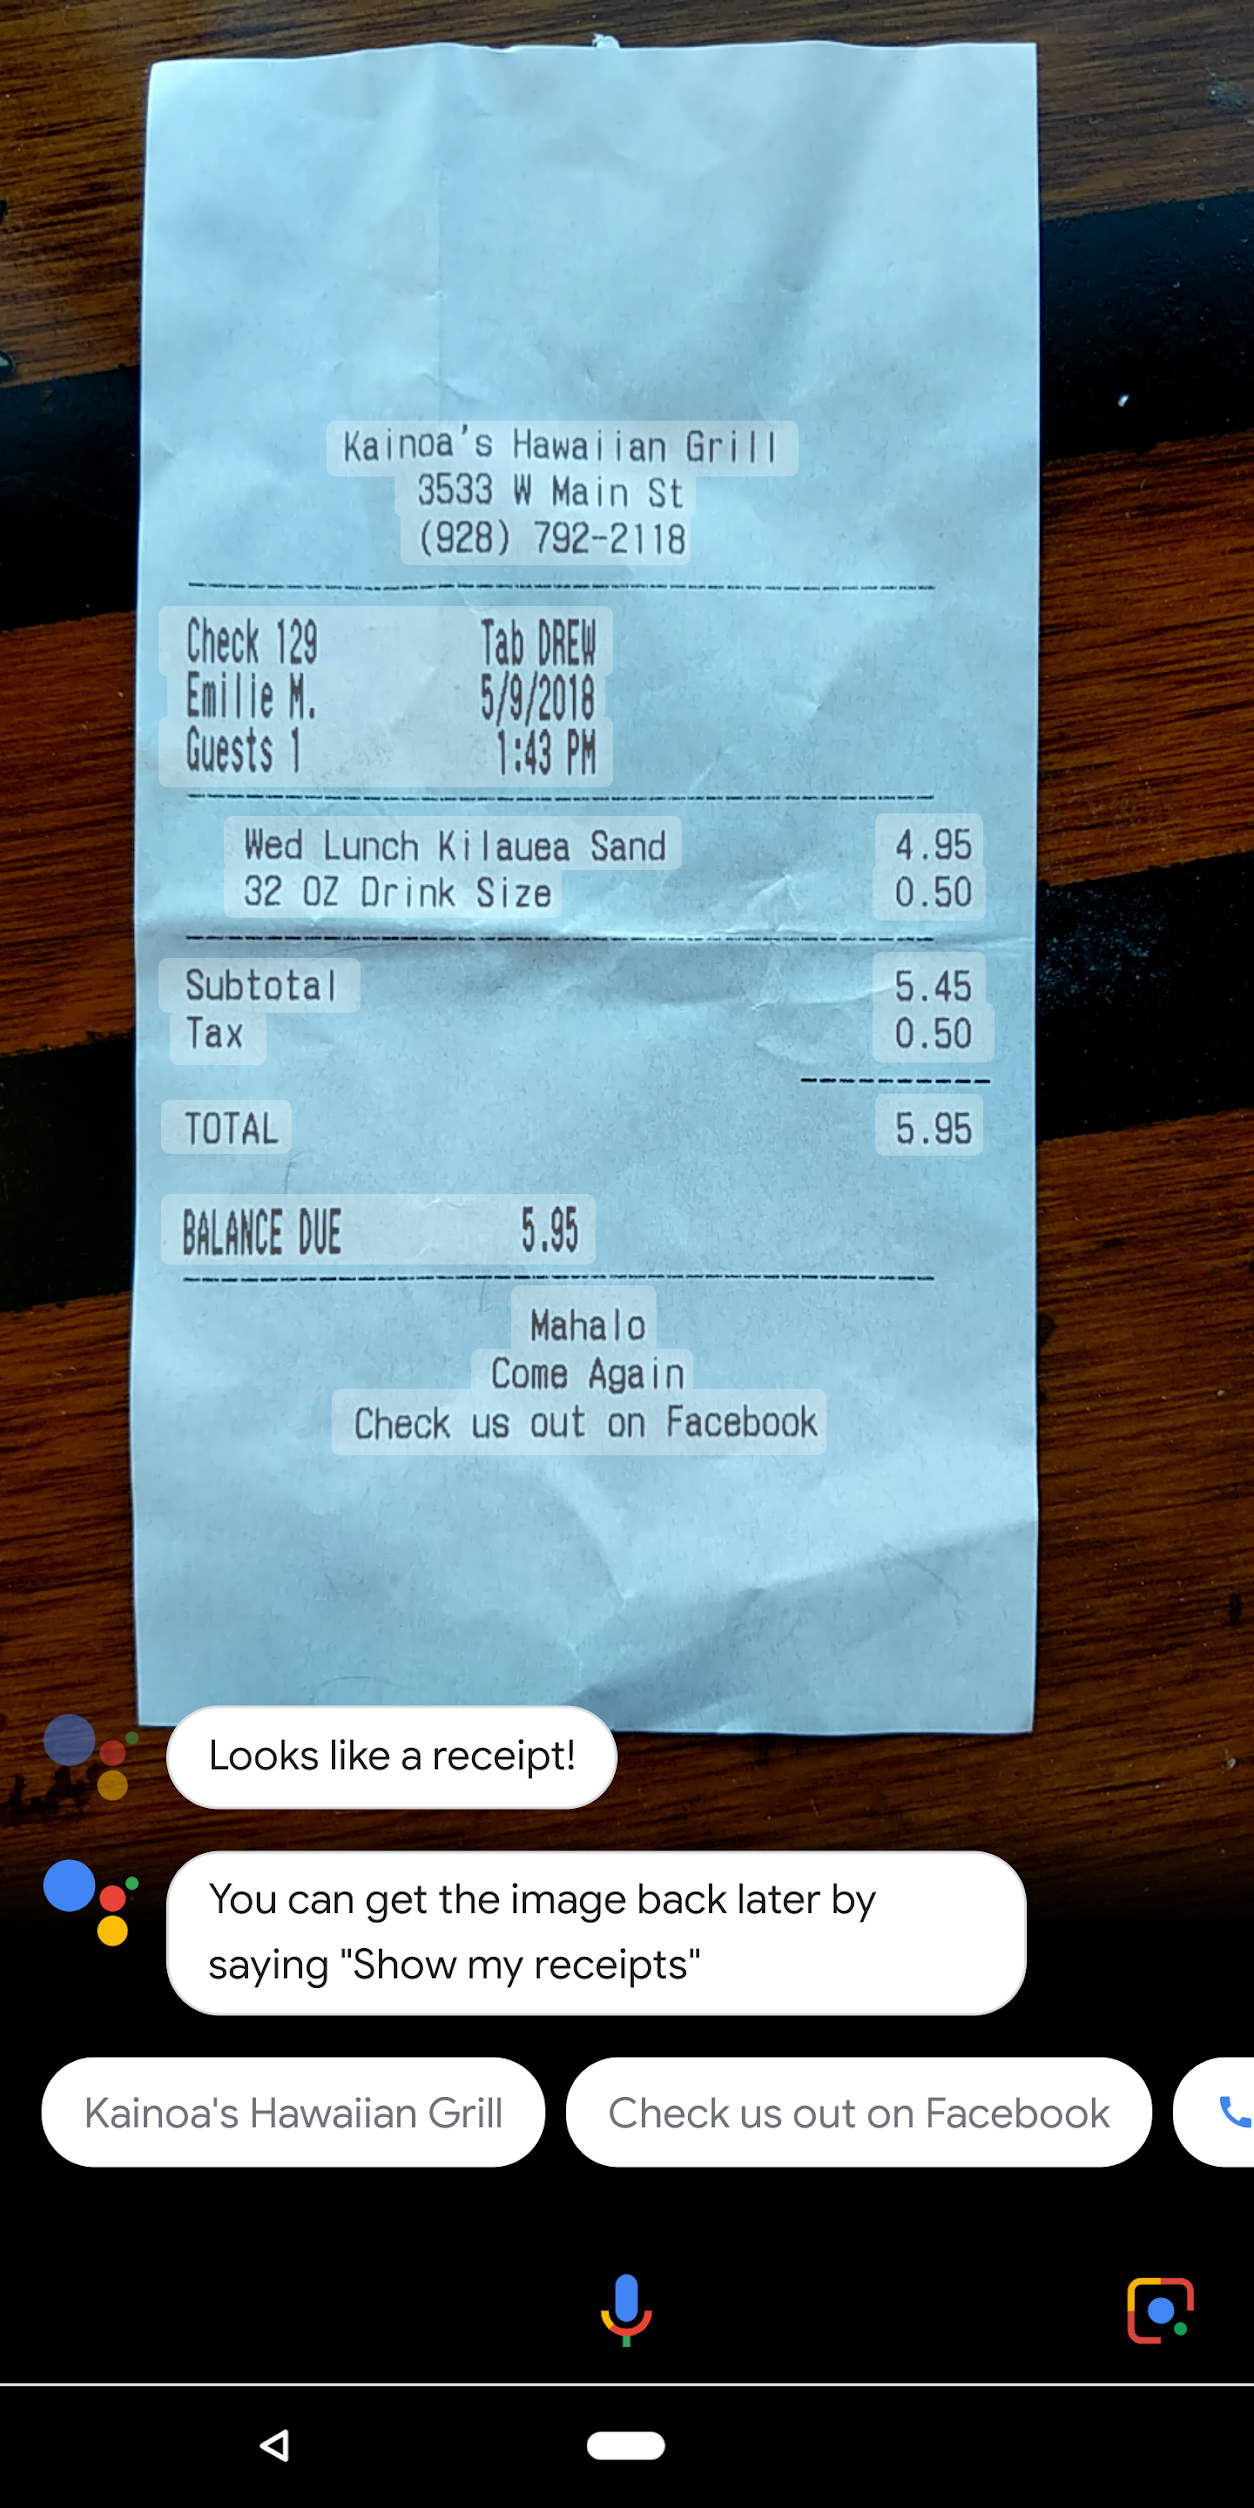 Google Lens can recognize receipts and organize them for you in